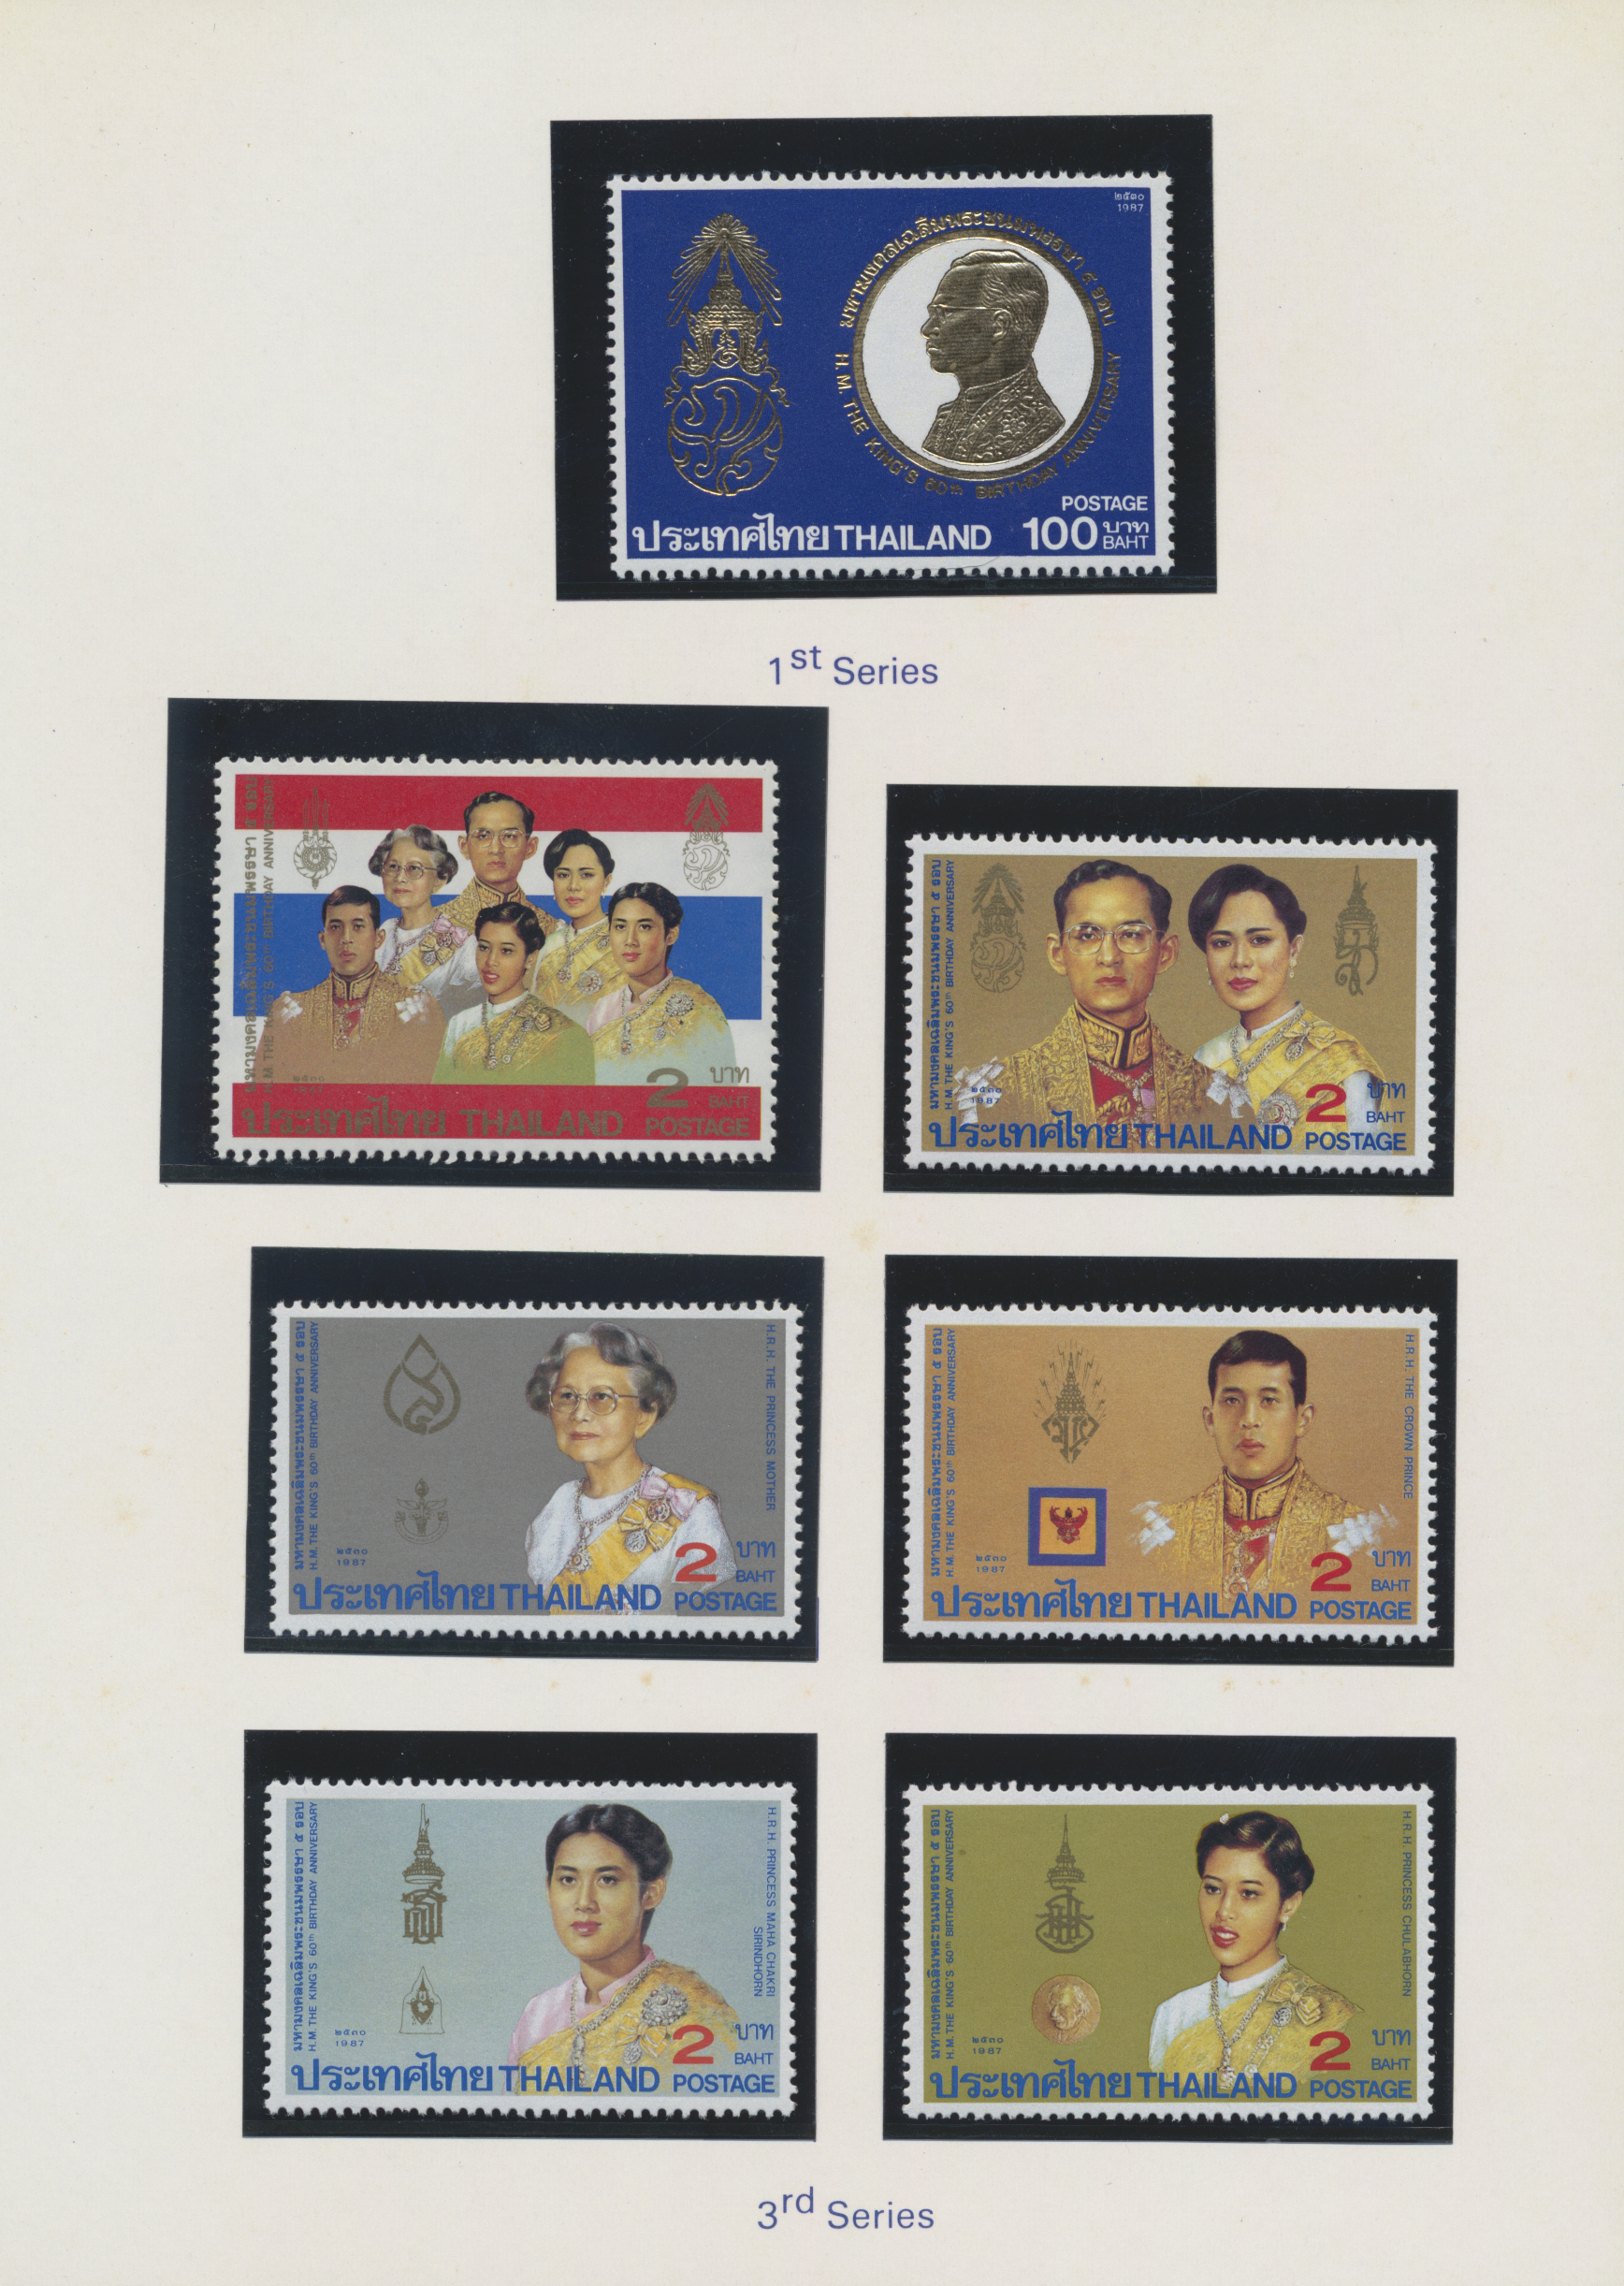 Lot 21945 - thailand  -  Auktionshaus Christoph Gärtner GmbH & Co. KG Sale #46 Collections Worldwide